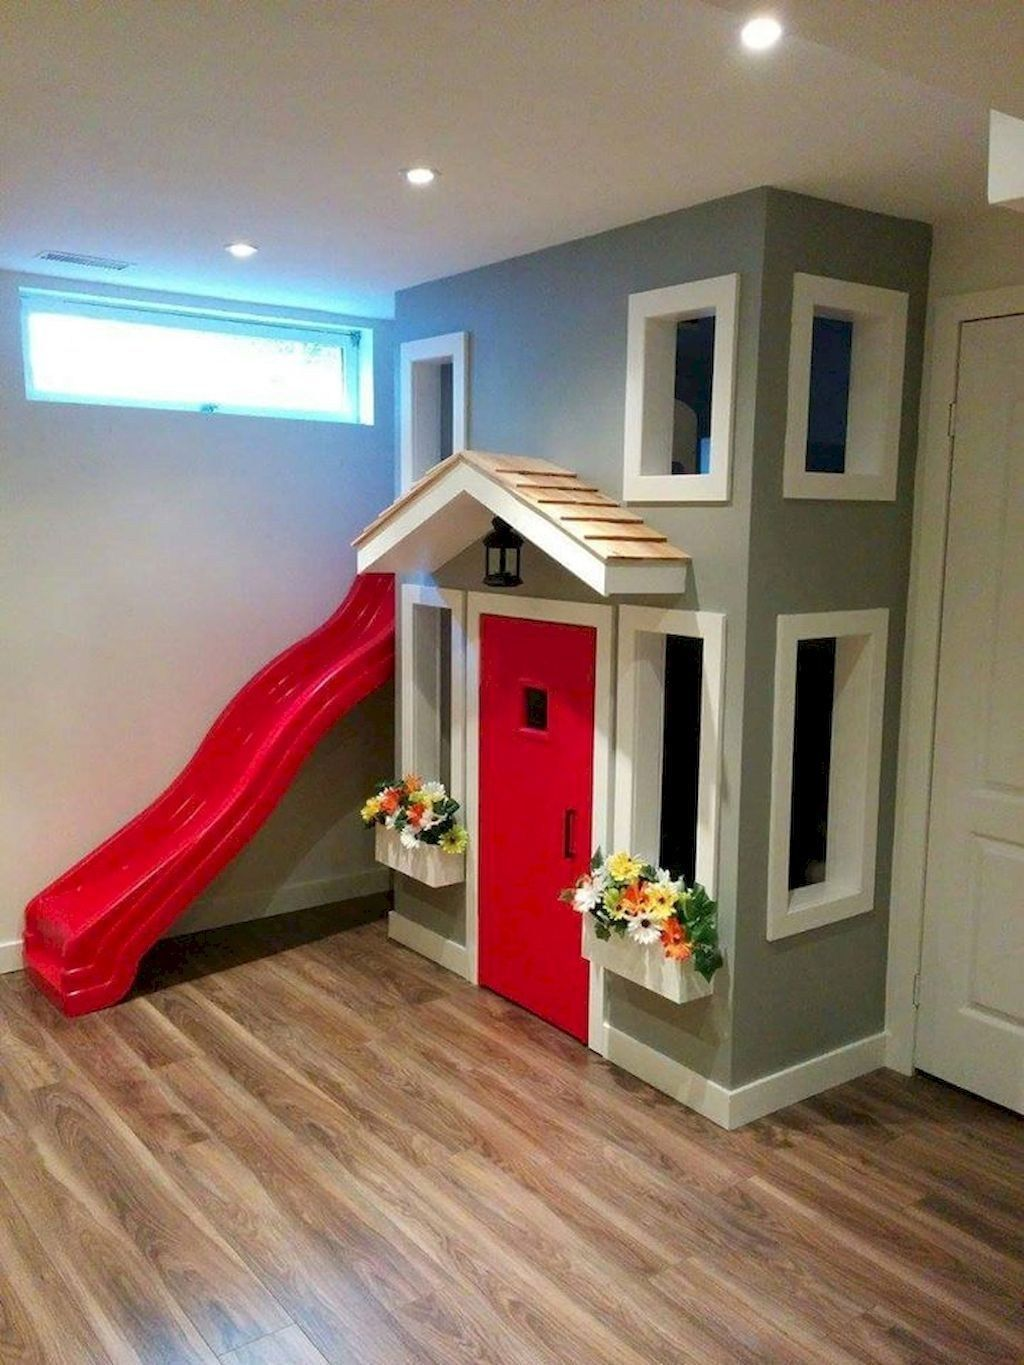 7 Clever Ways to Transform Your Basement Into a Cool Kids Playroom images